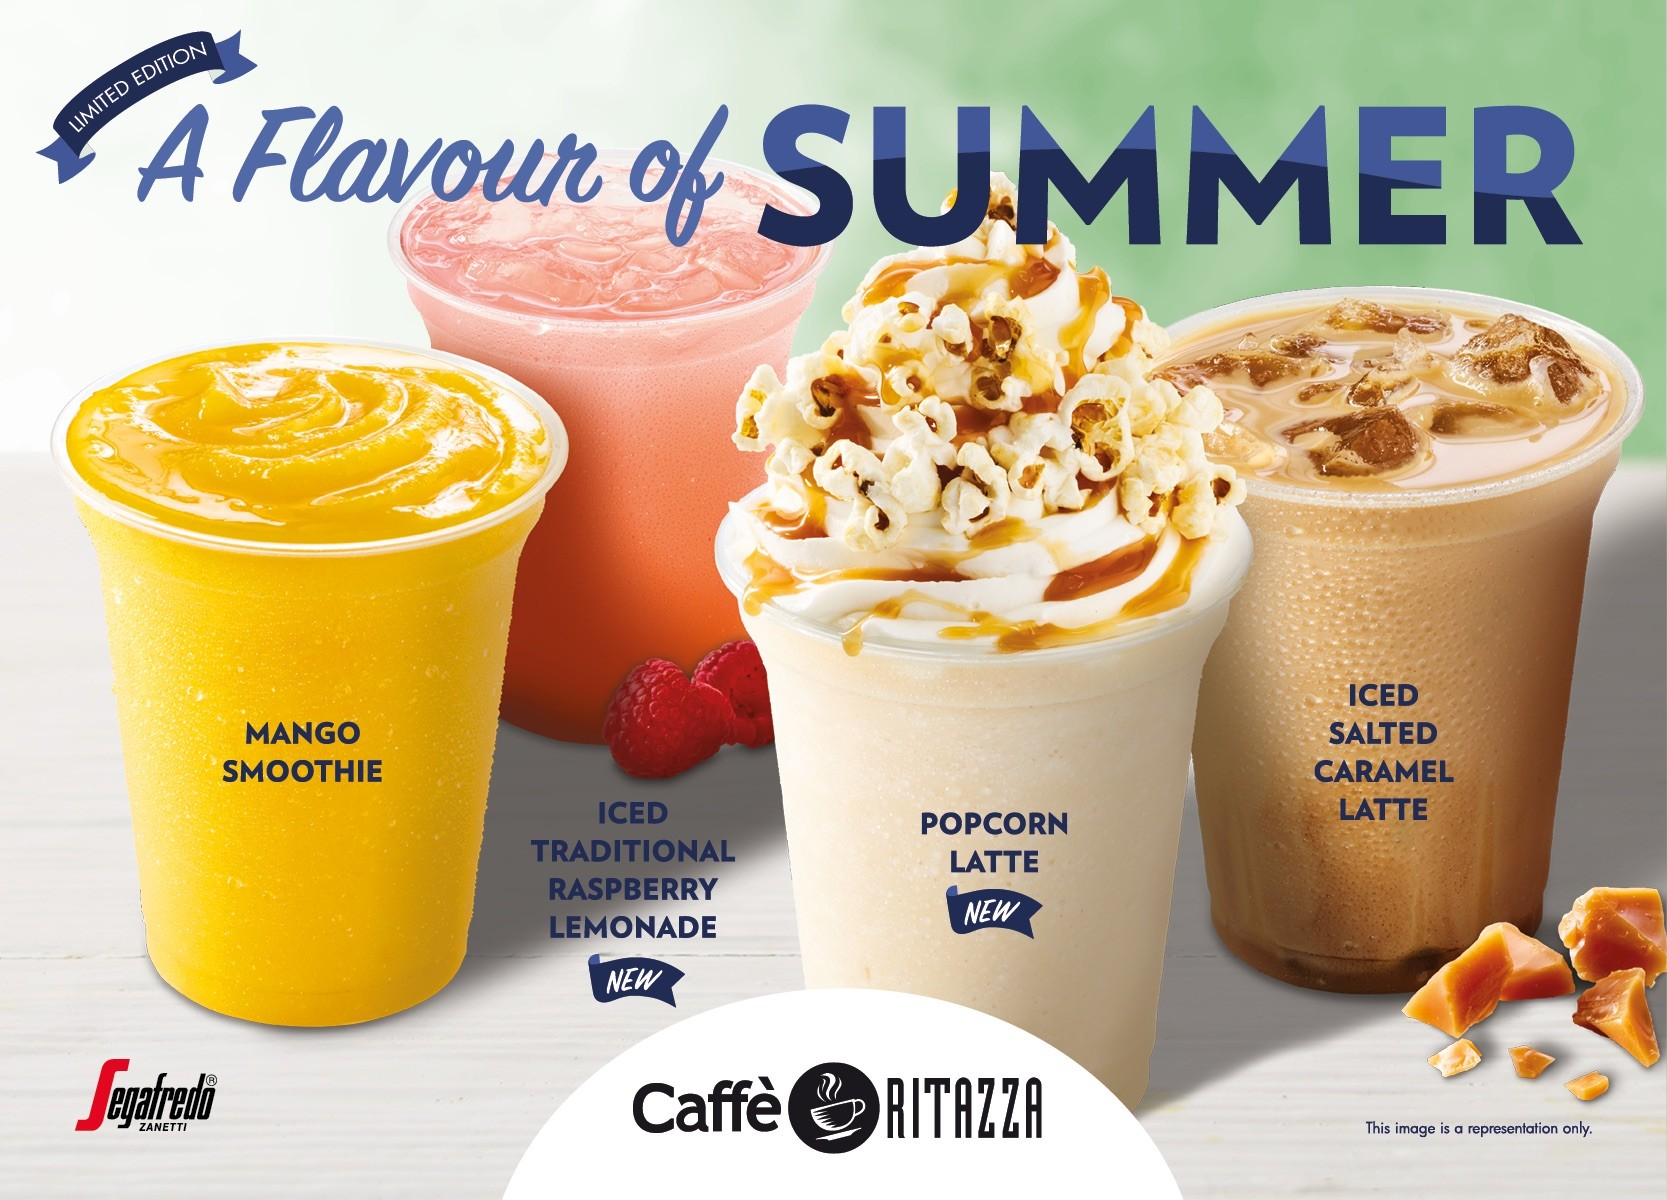 A flavour of summer. Smoothies with flavours: mango, raspberry lemonade, popcorn latte and salted caramel latte.